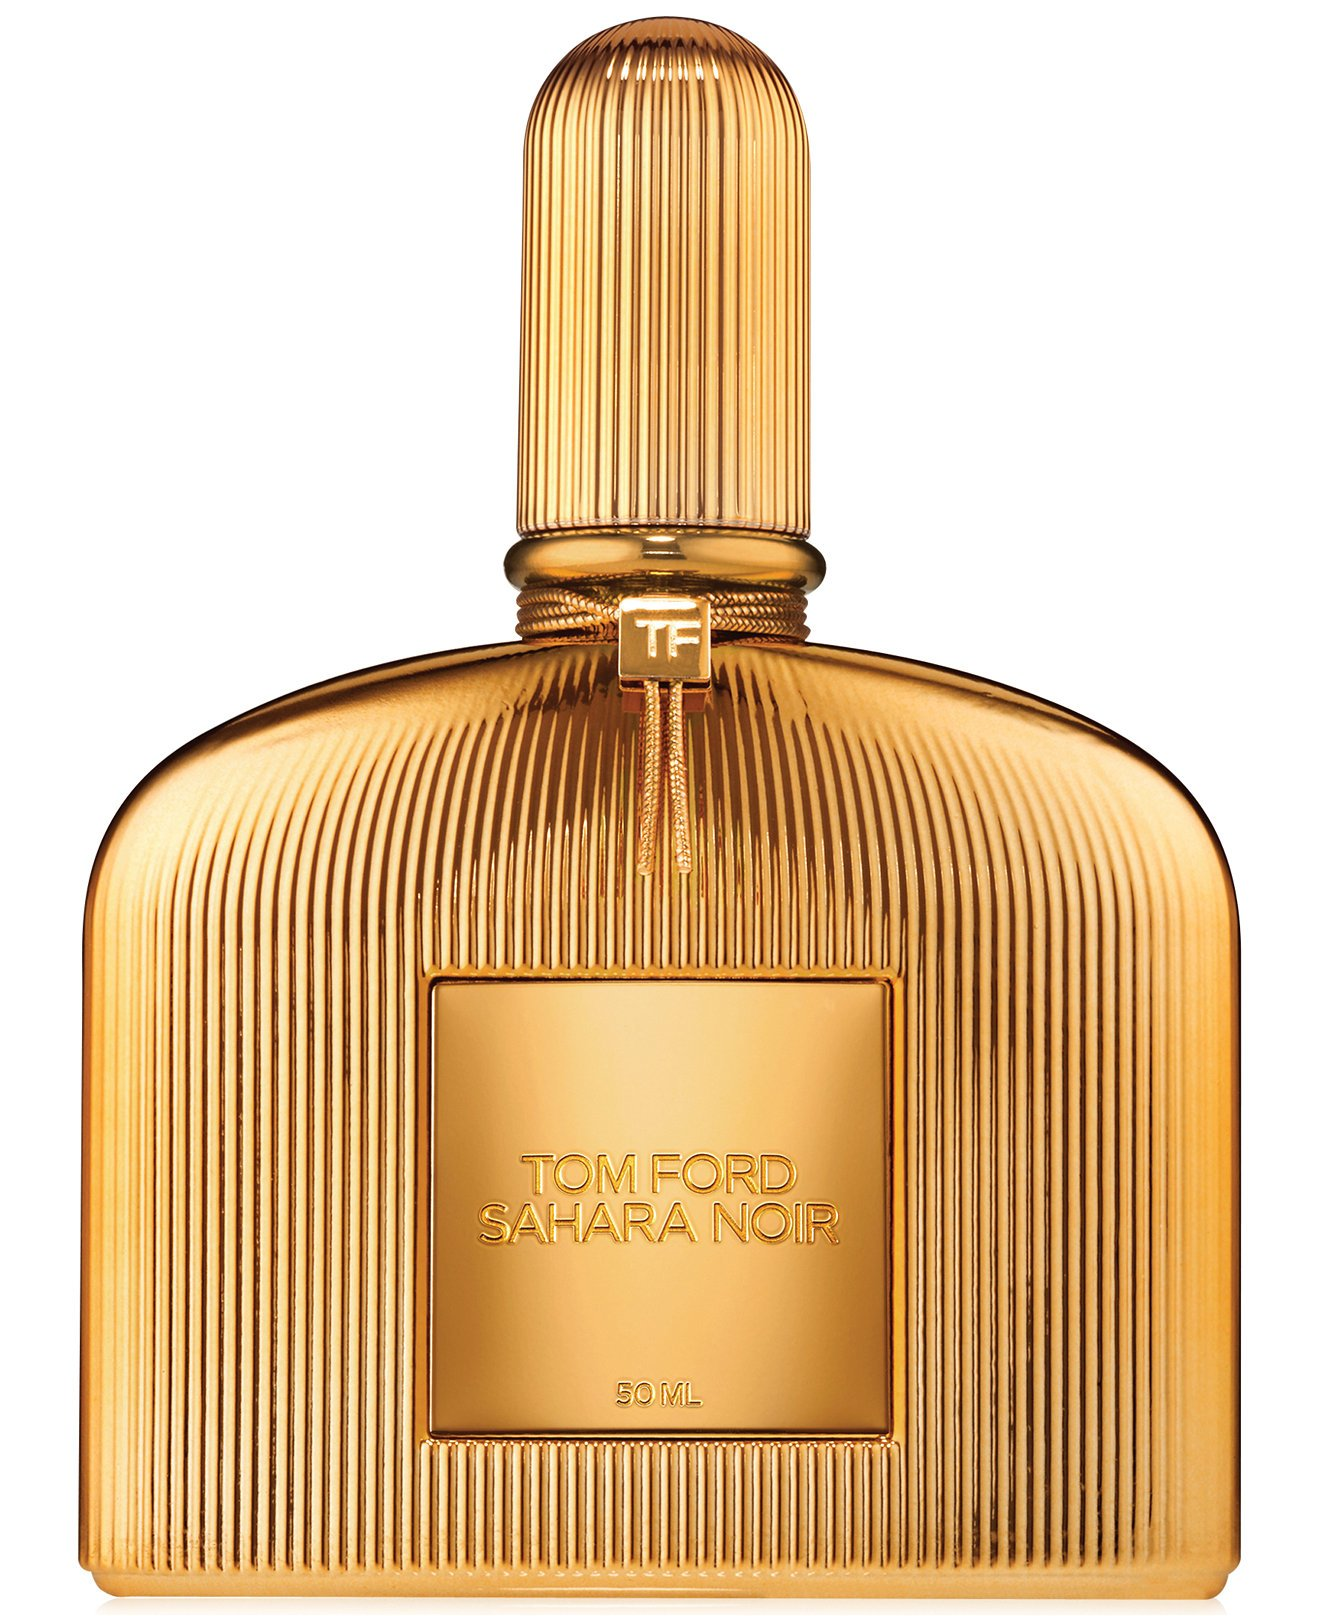 Tom Ford Sahara Noir Eau de Parfum Spray, 1.7 Ounce